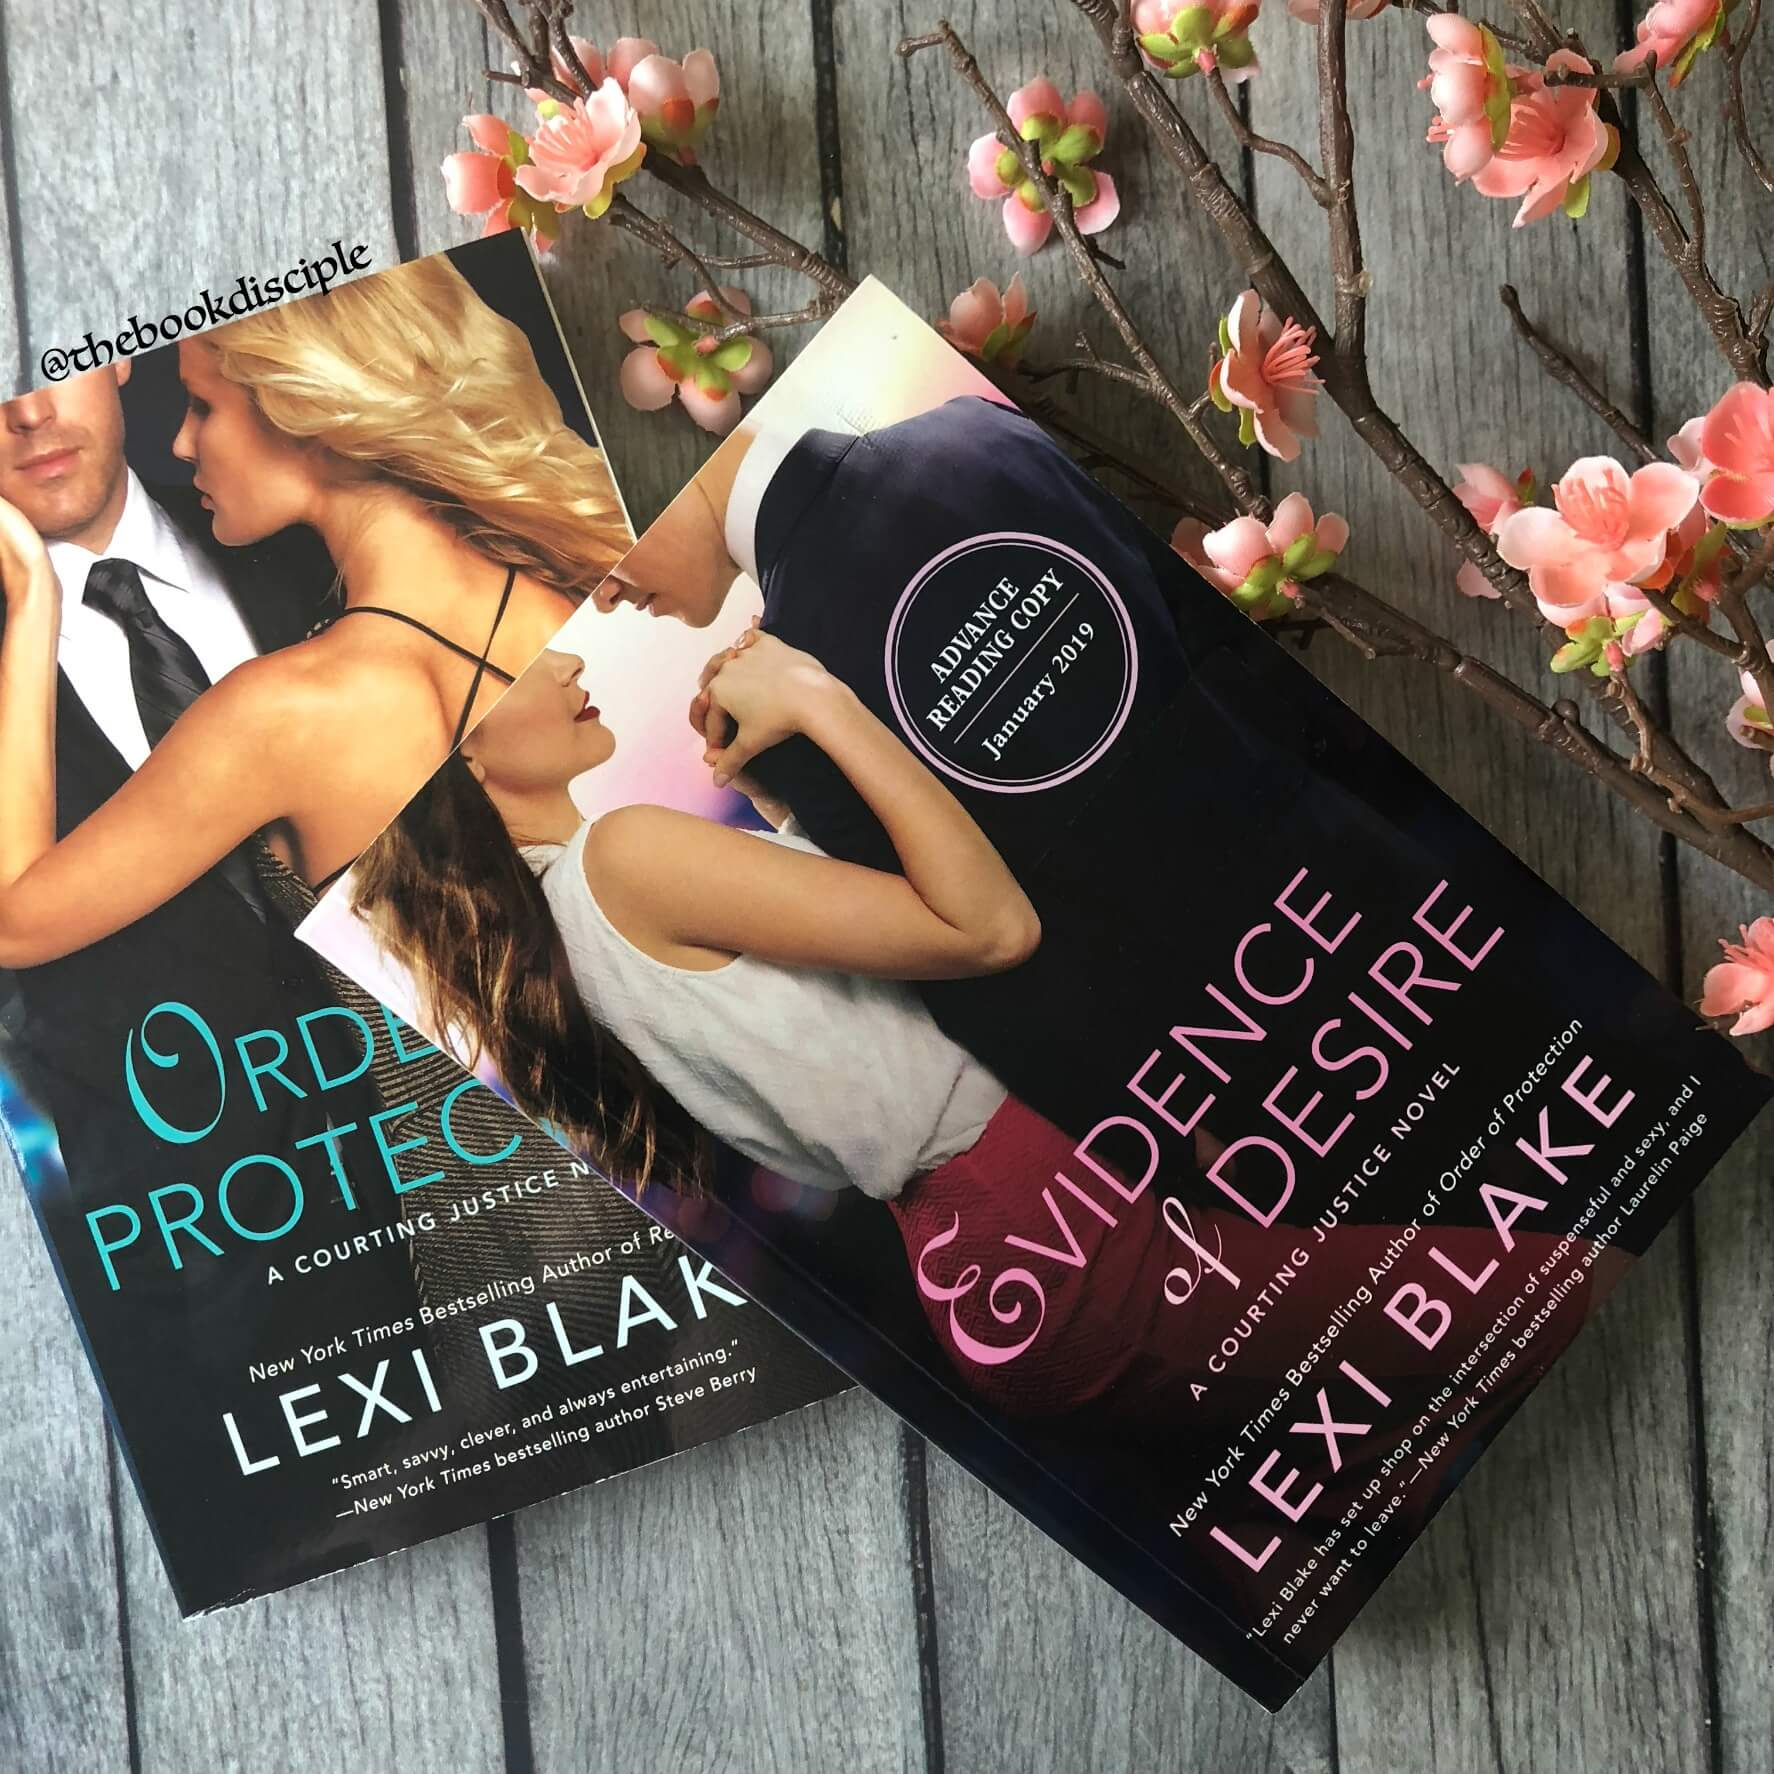 Evidence of Desire by Lexi Blake